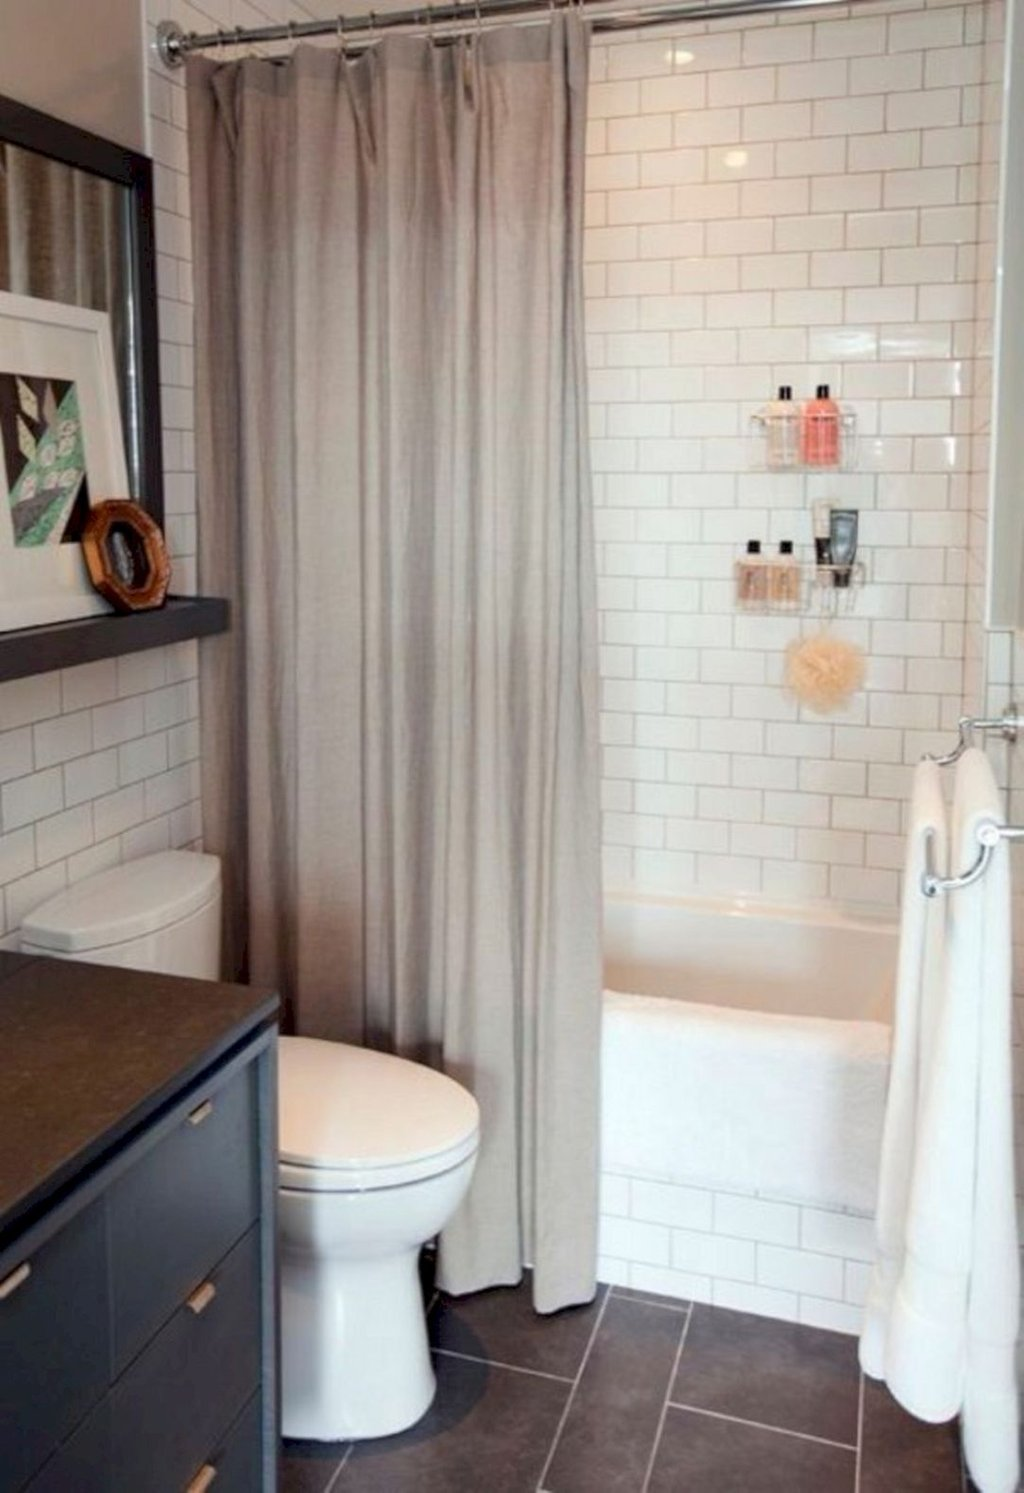 24 Small Bathroom Design Shower Idea 24 Space Shower Stalls For Small Bathrooms